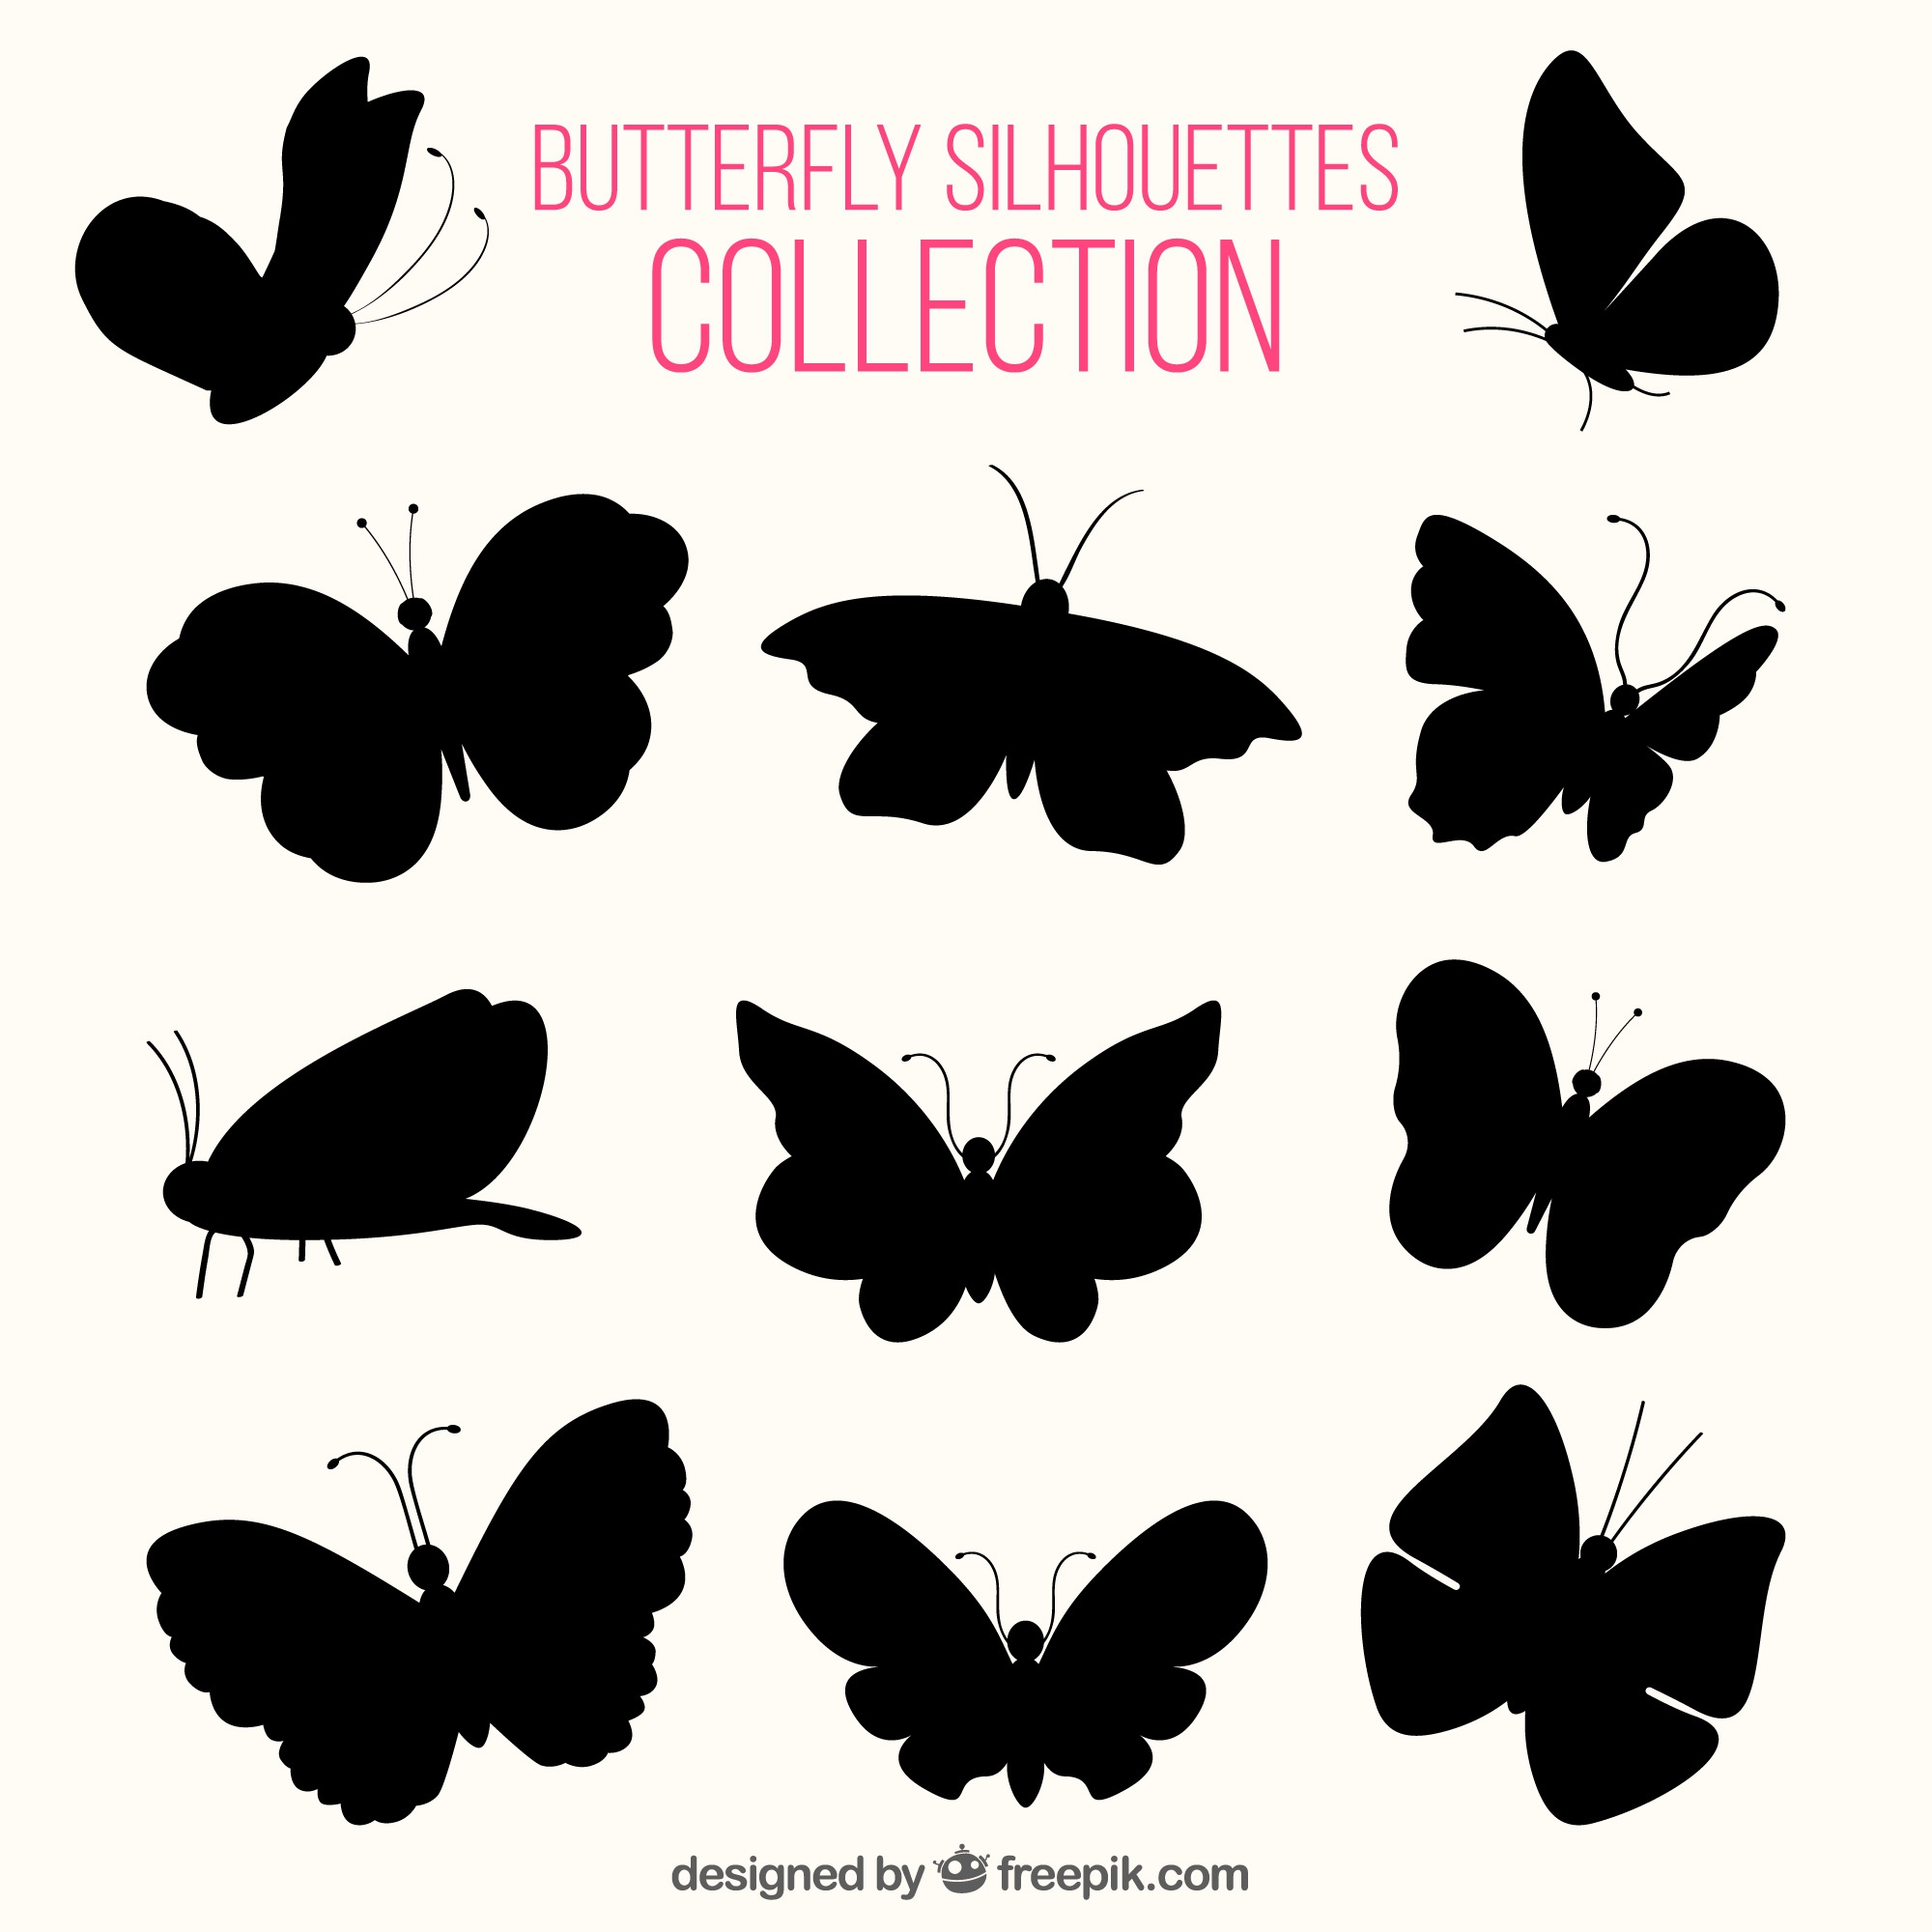 Various silhouettes of butterflies